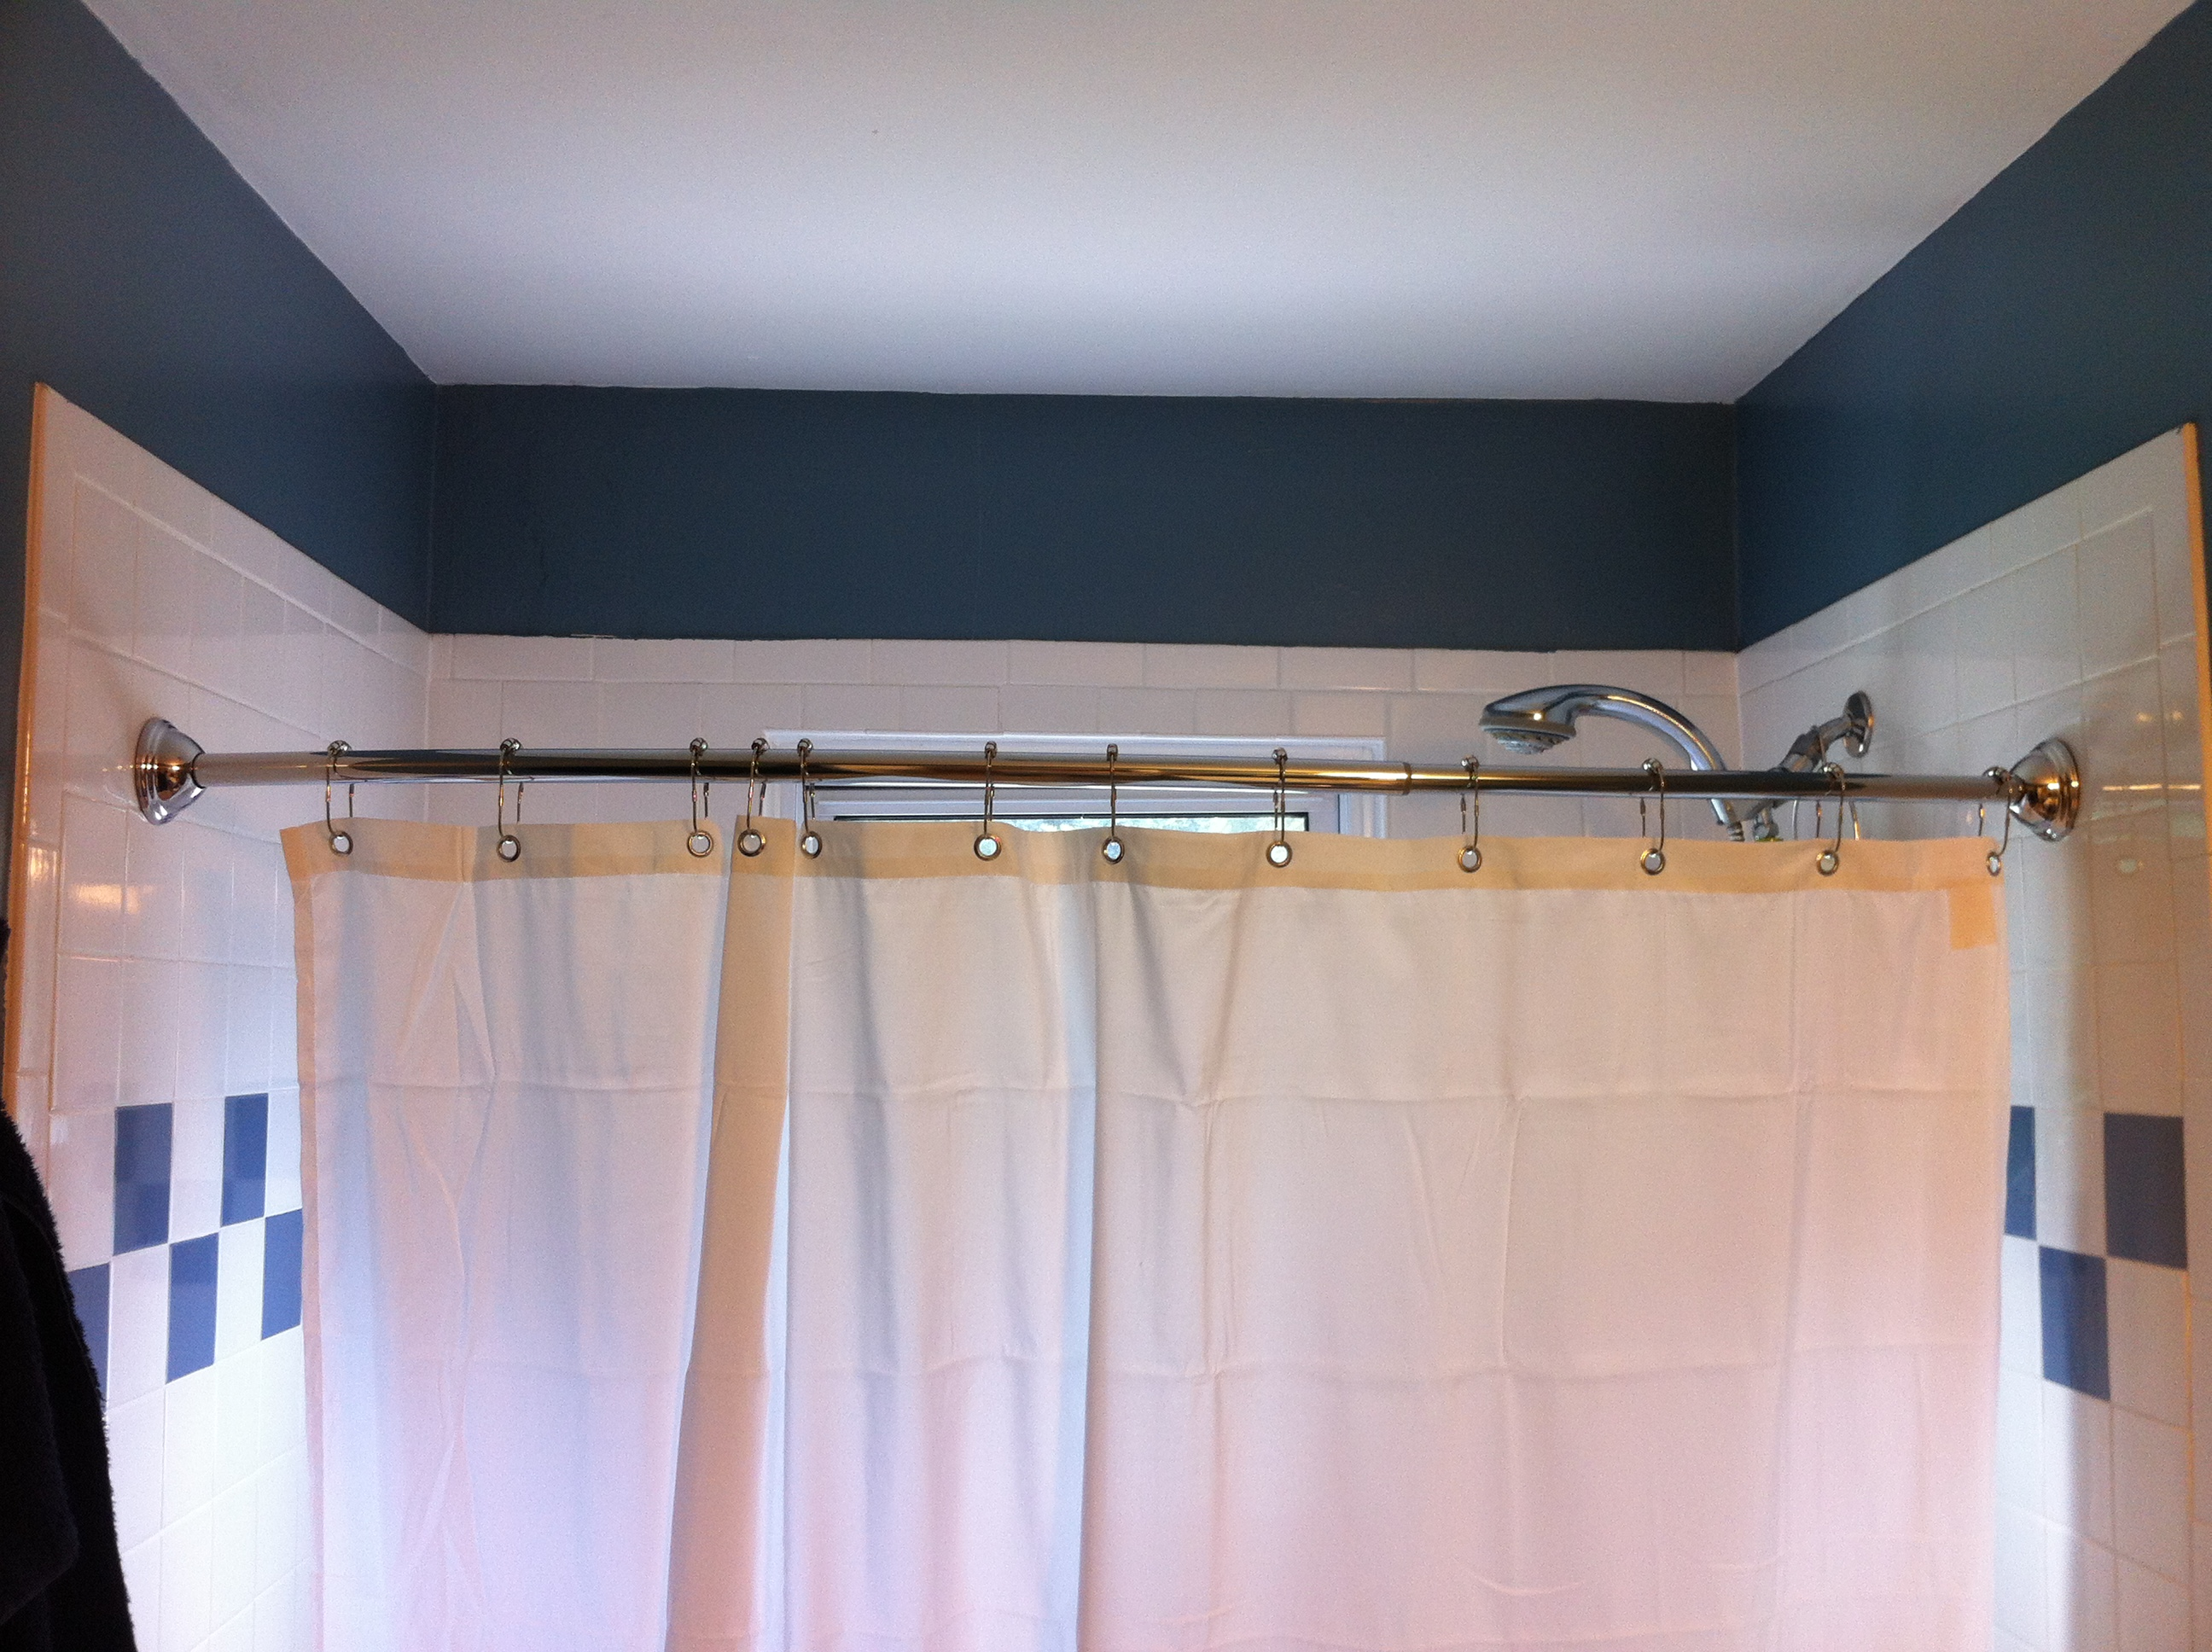 Curtain rod projection